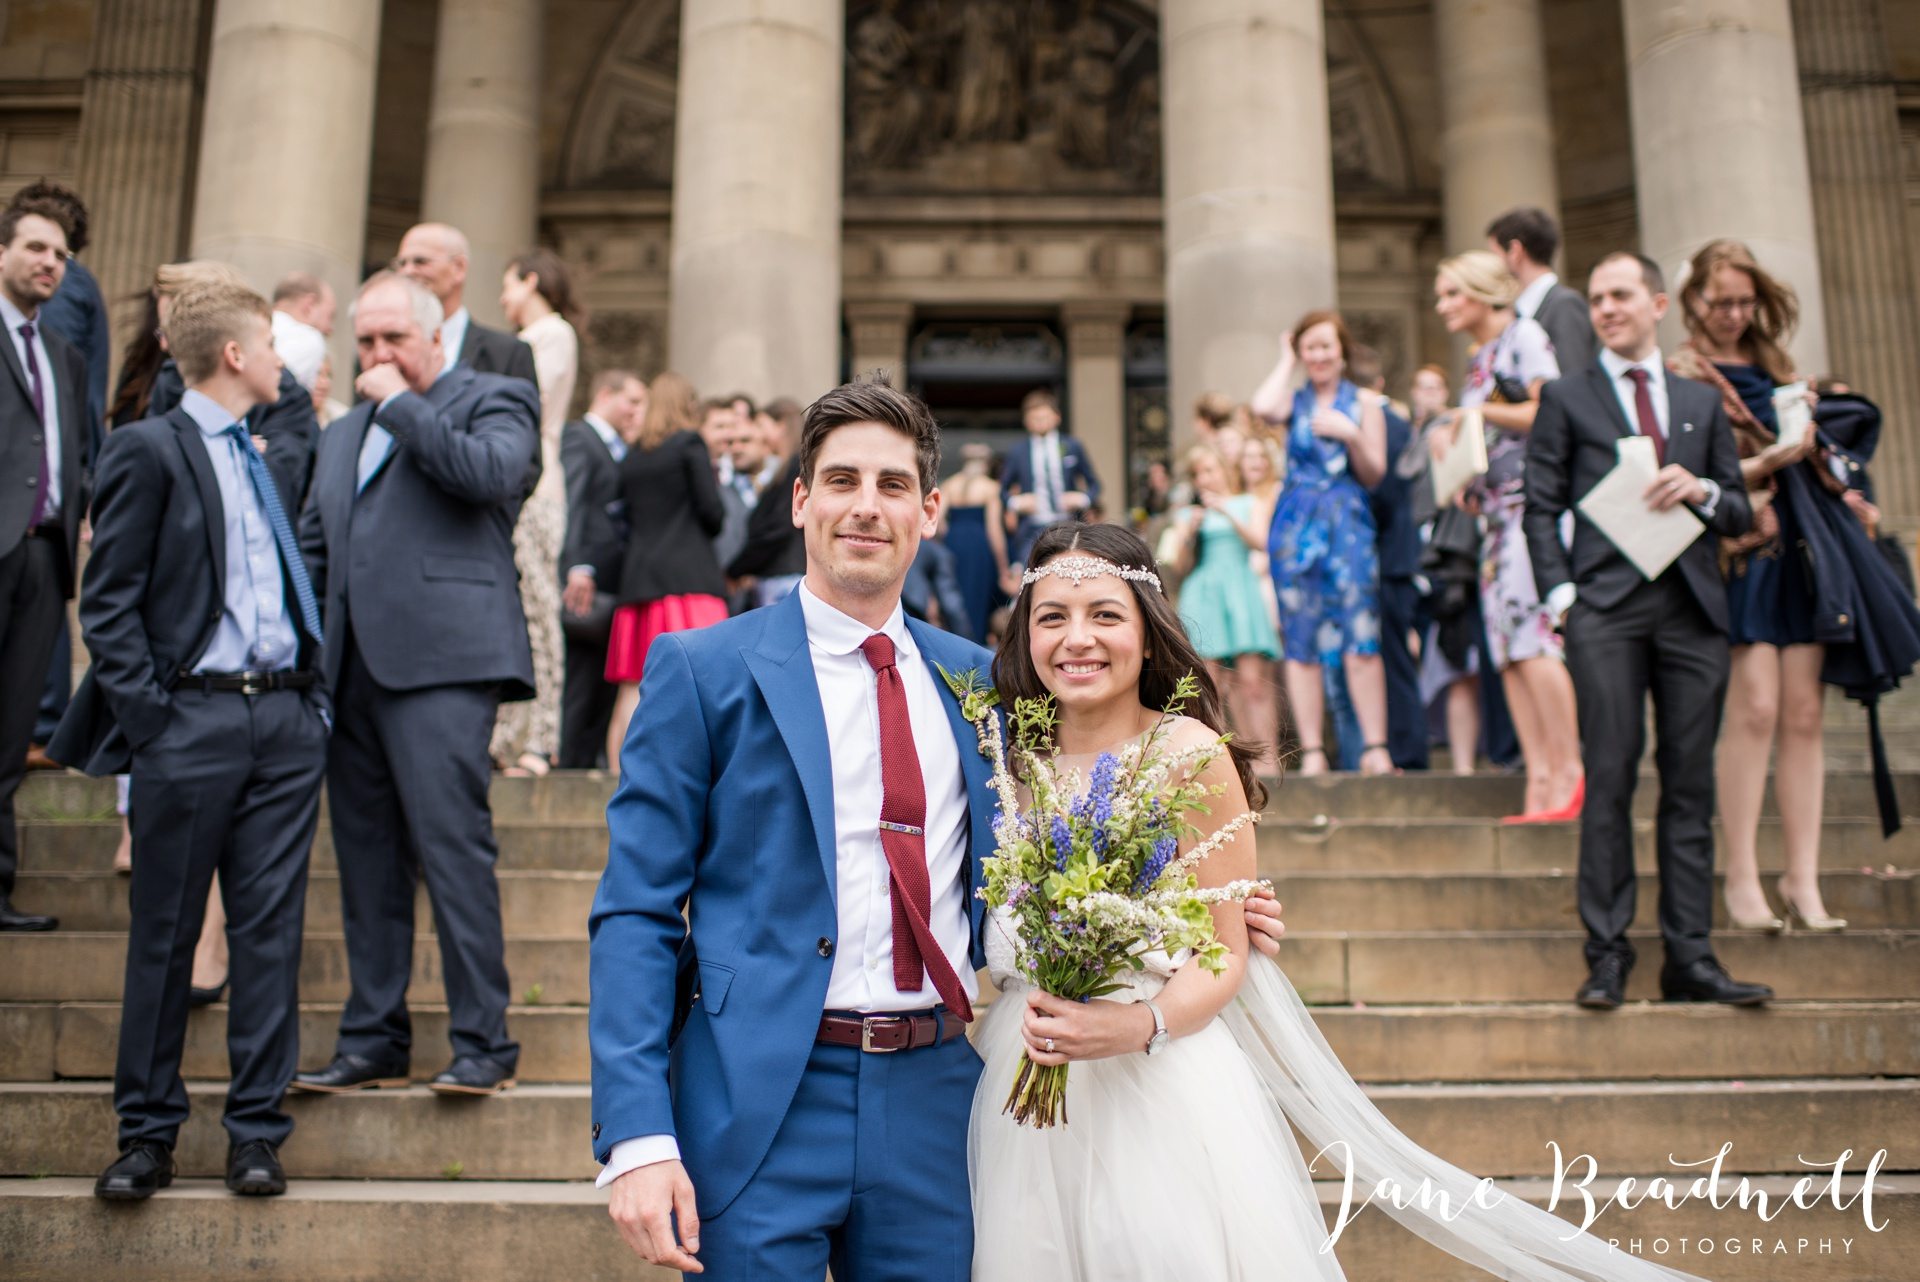 Left Bank Centre Leeds wedding photography by Jane Beadnell photography Yorkshire_0049